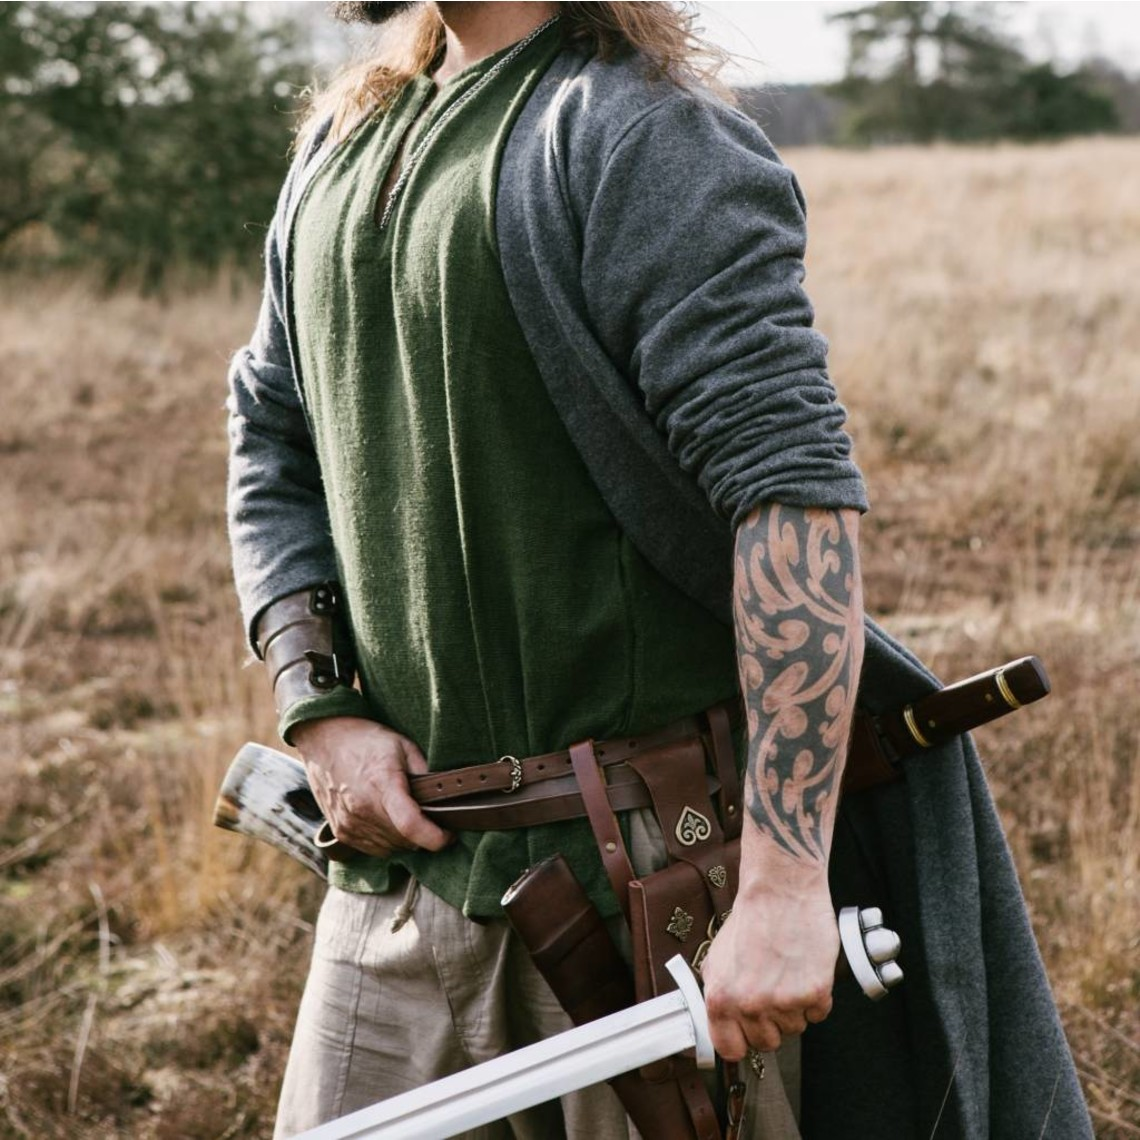 Deepeeka Viking sword Godfred